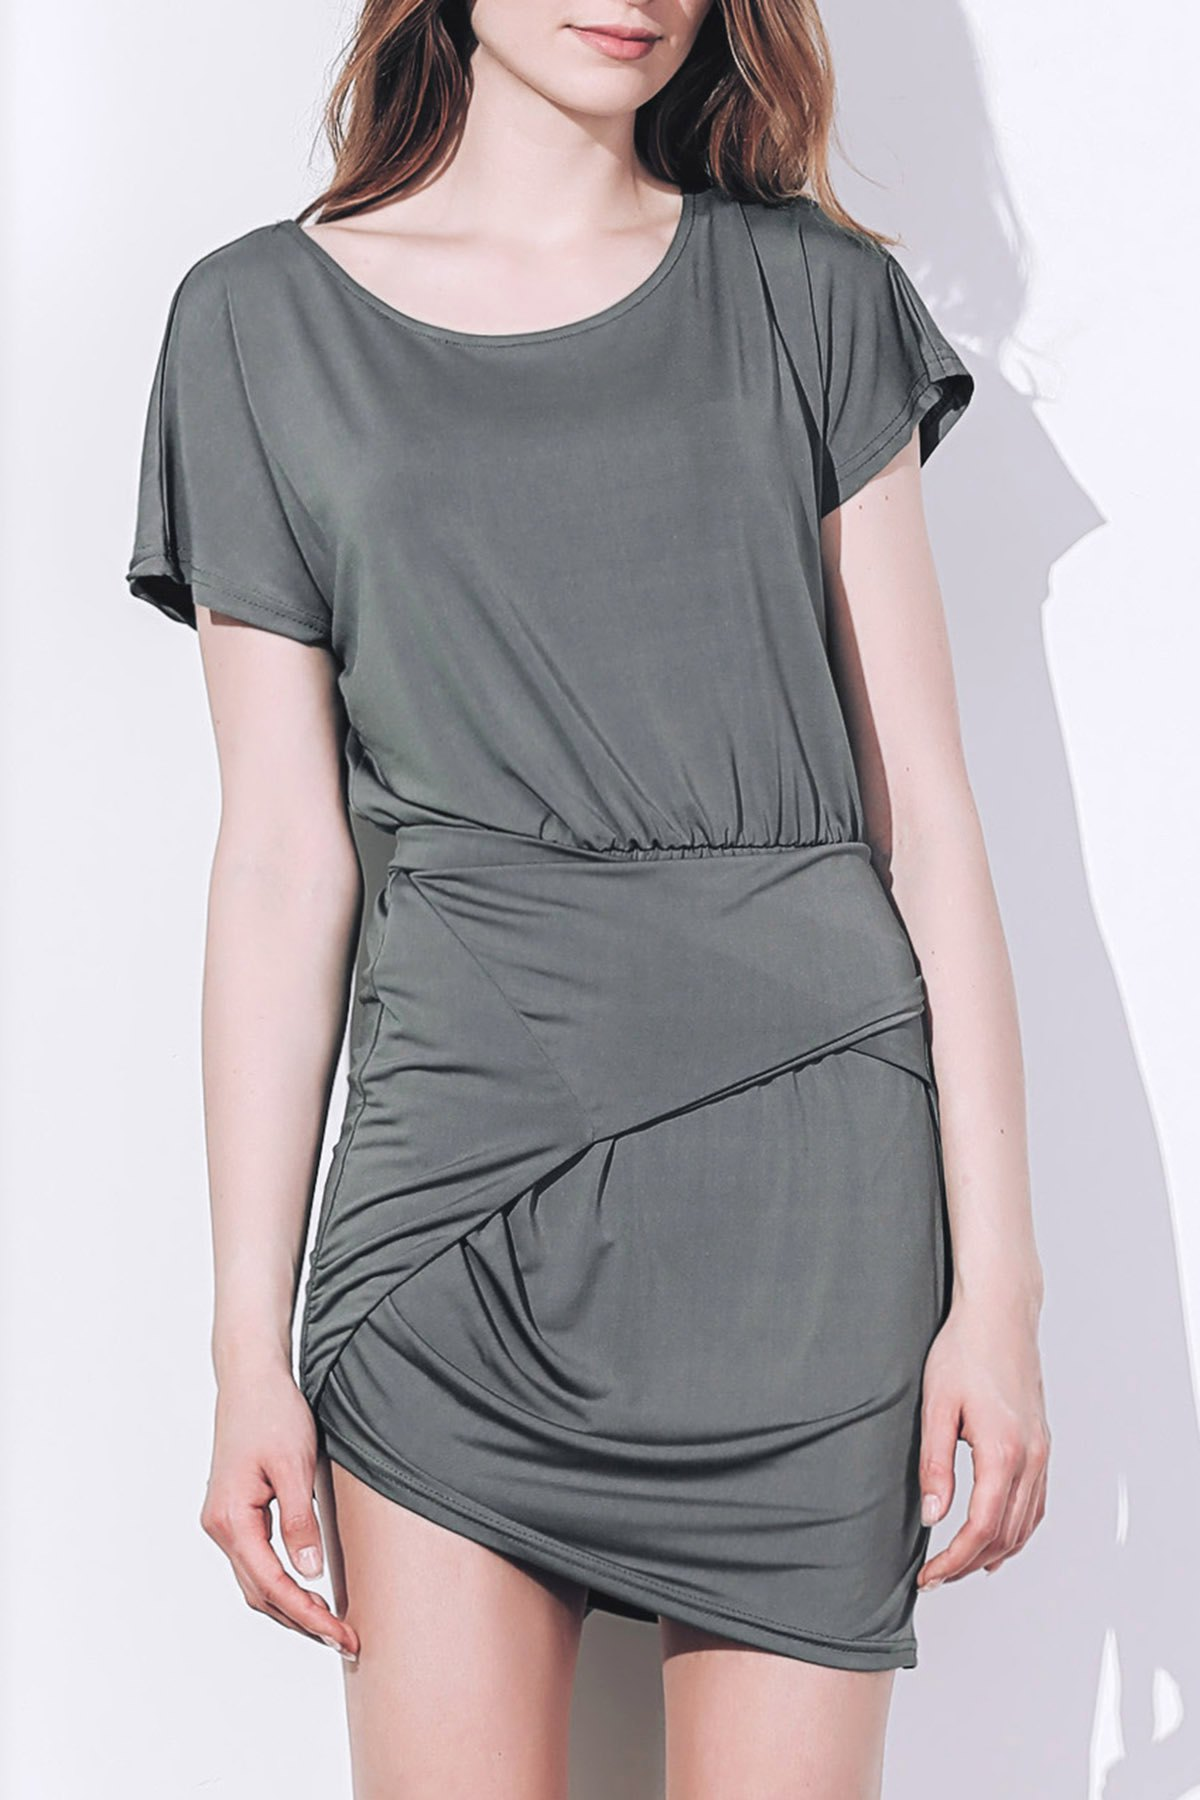 Discount Short Sleeve Asymmetrical T Shirt Dress